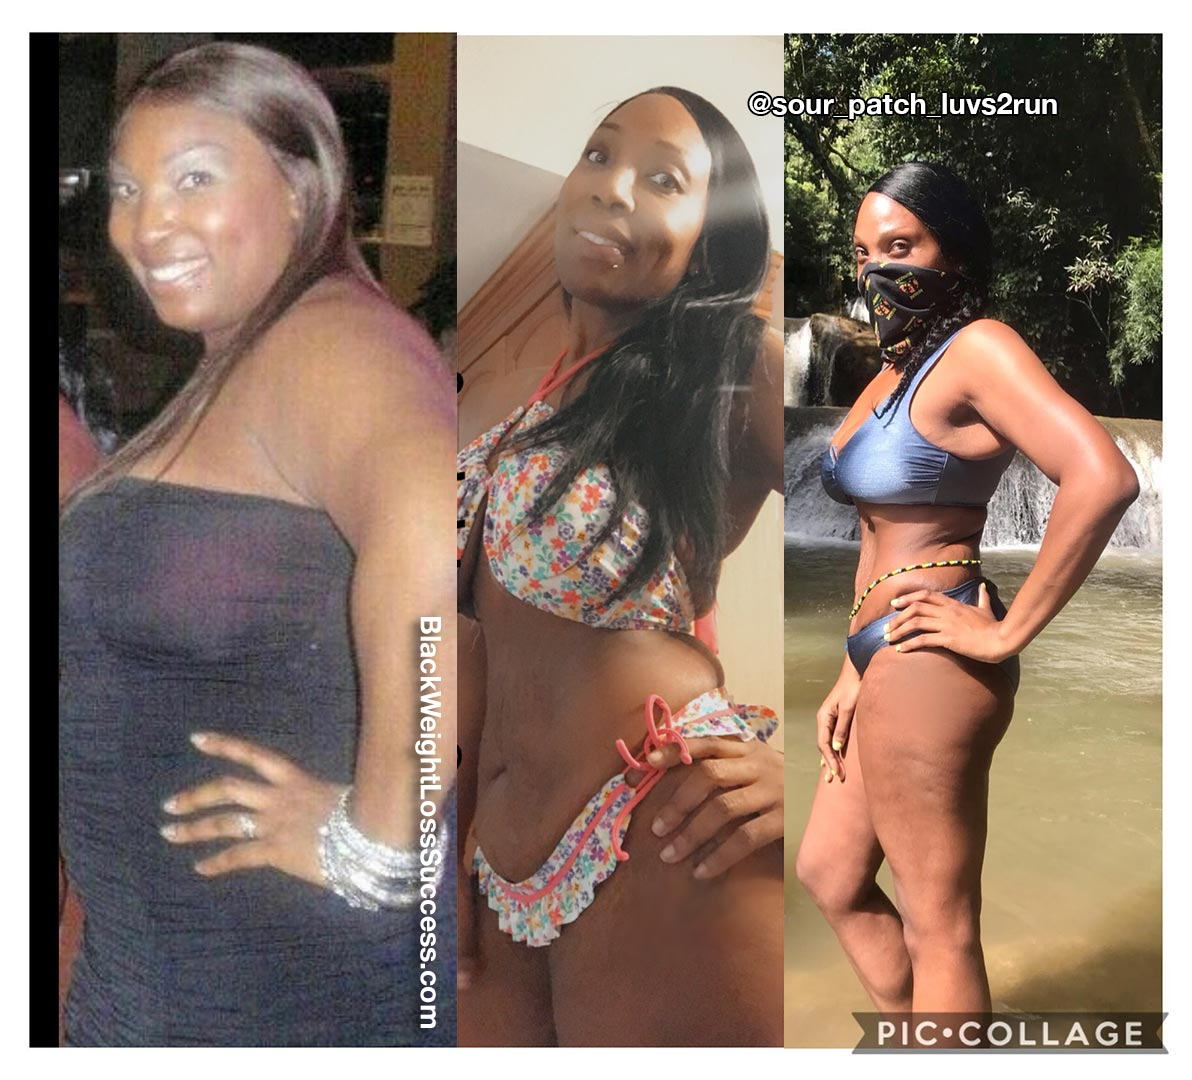 Latisha lost 70 pounds